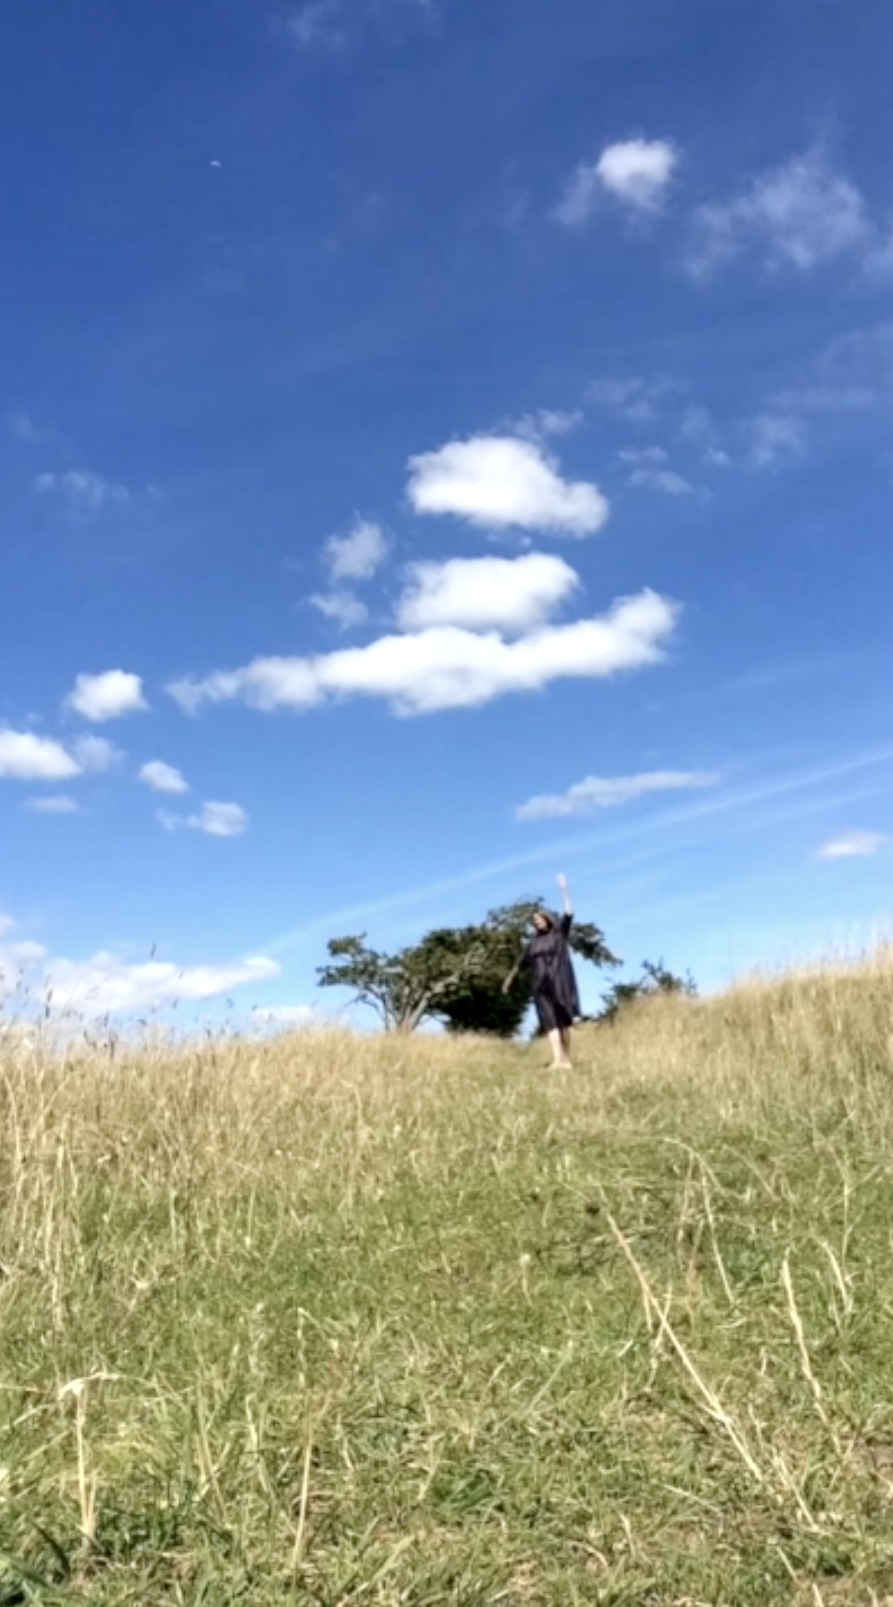 Dancer outside with sky, field, tree